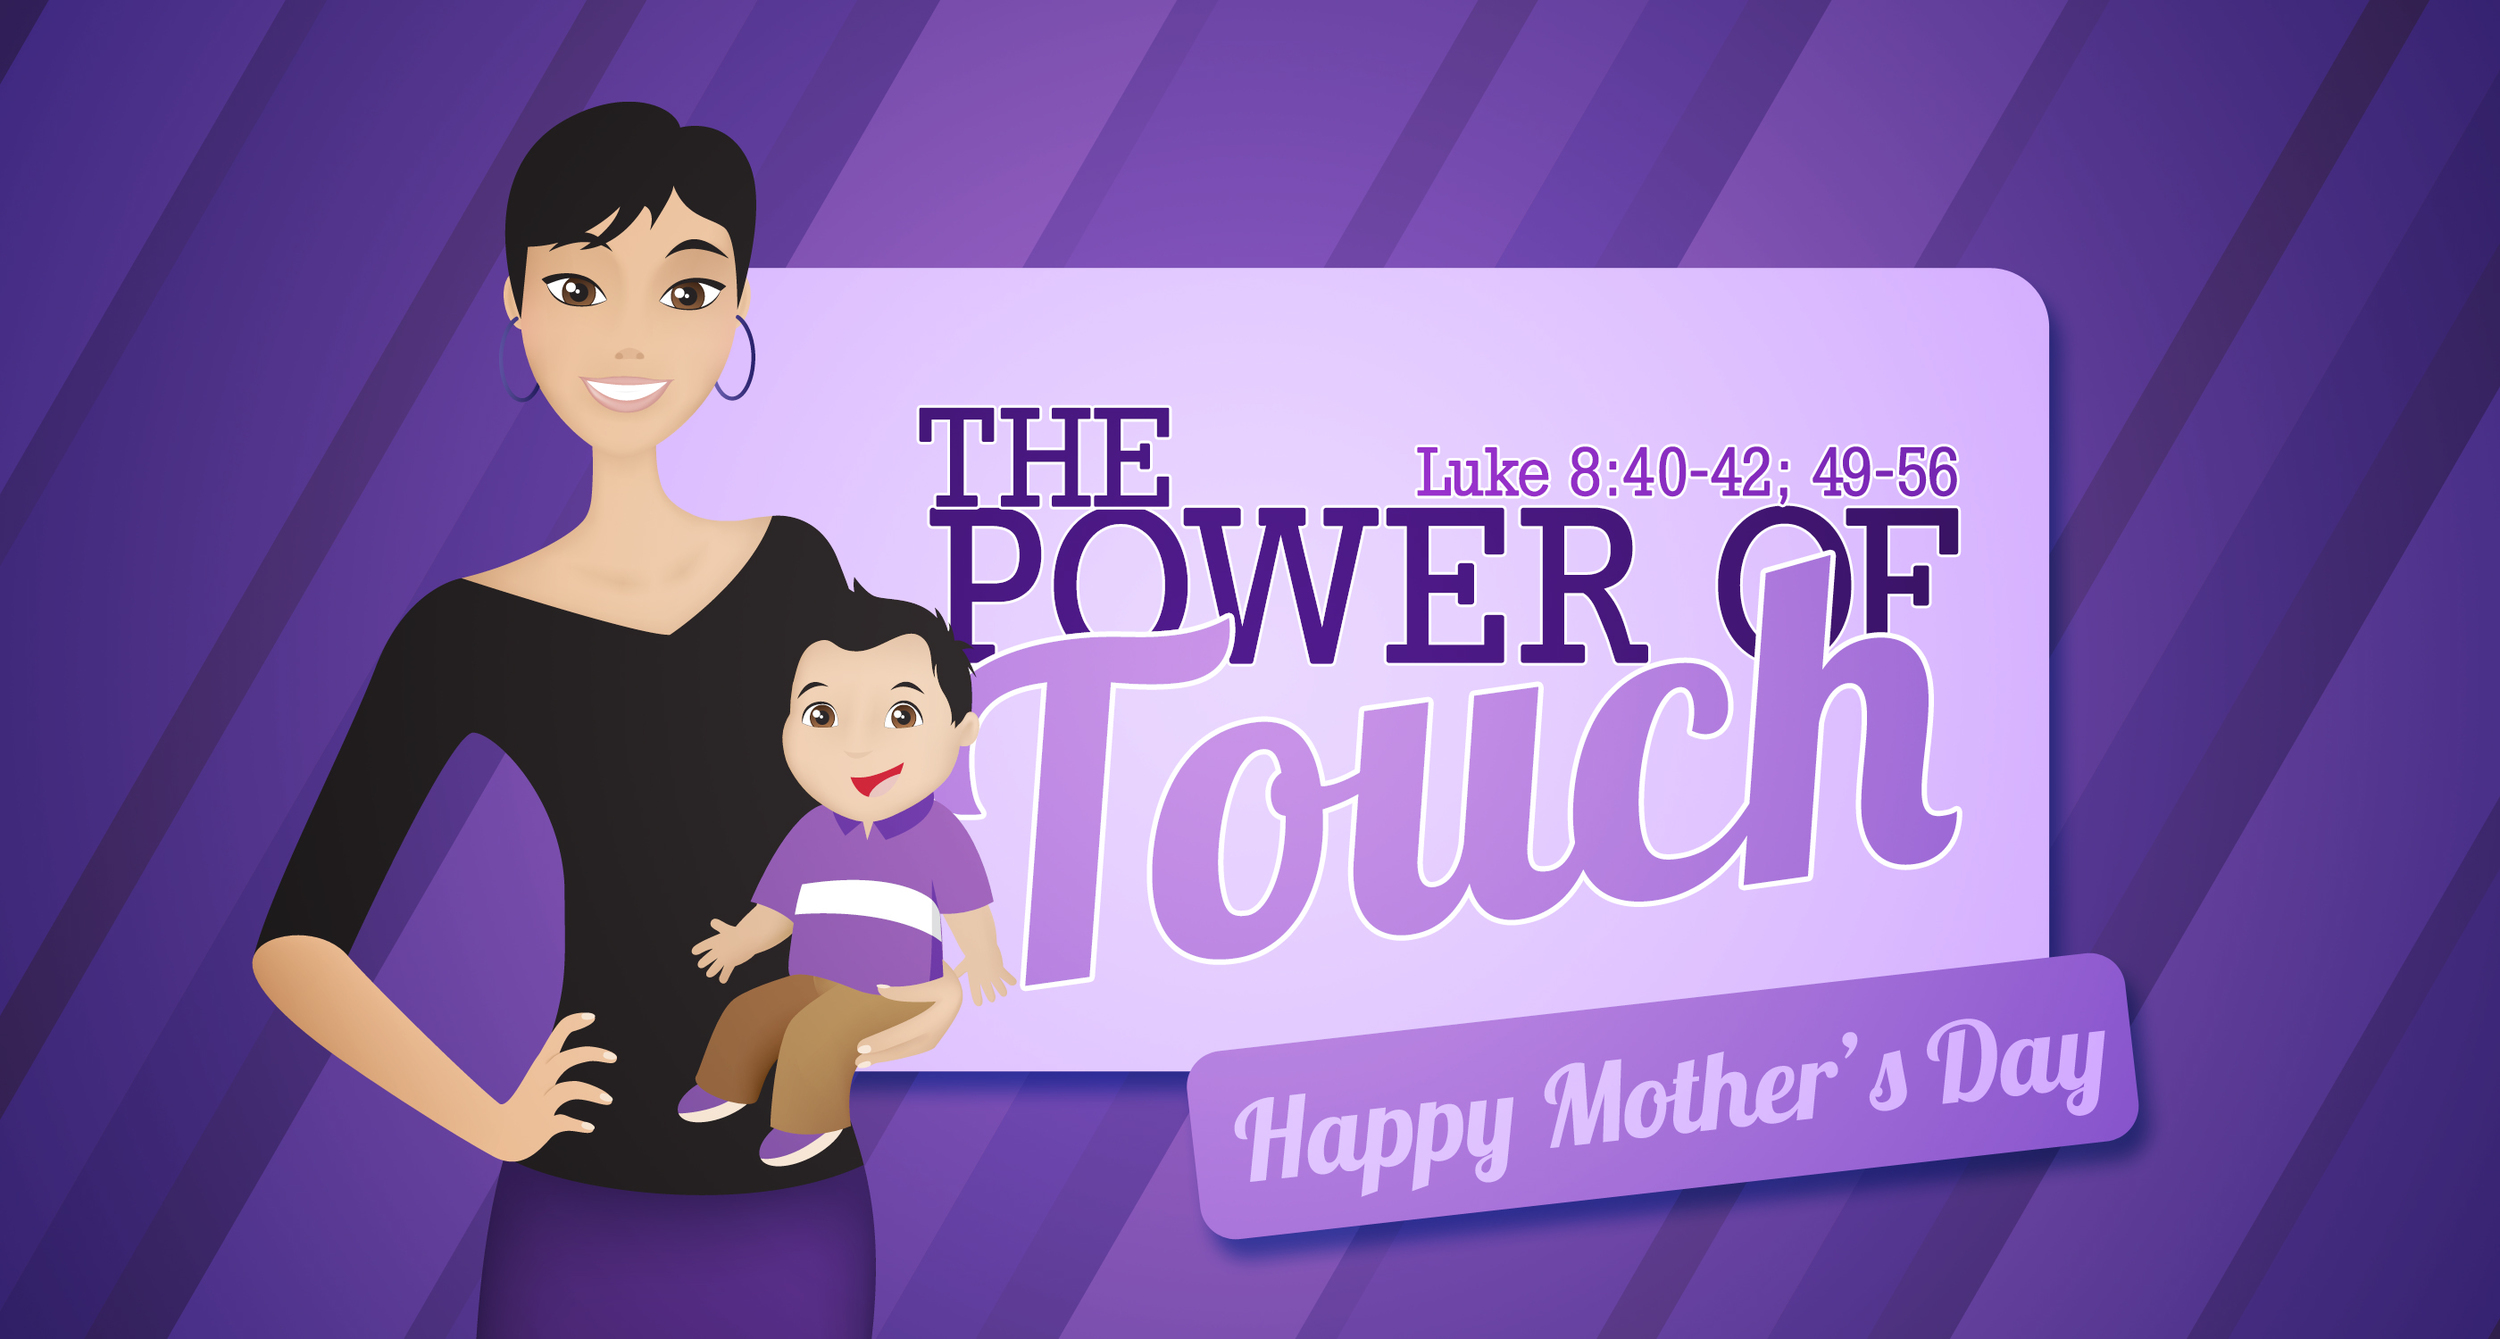 May 11 - Mother's Day